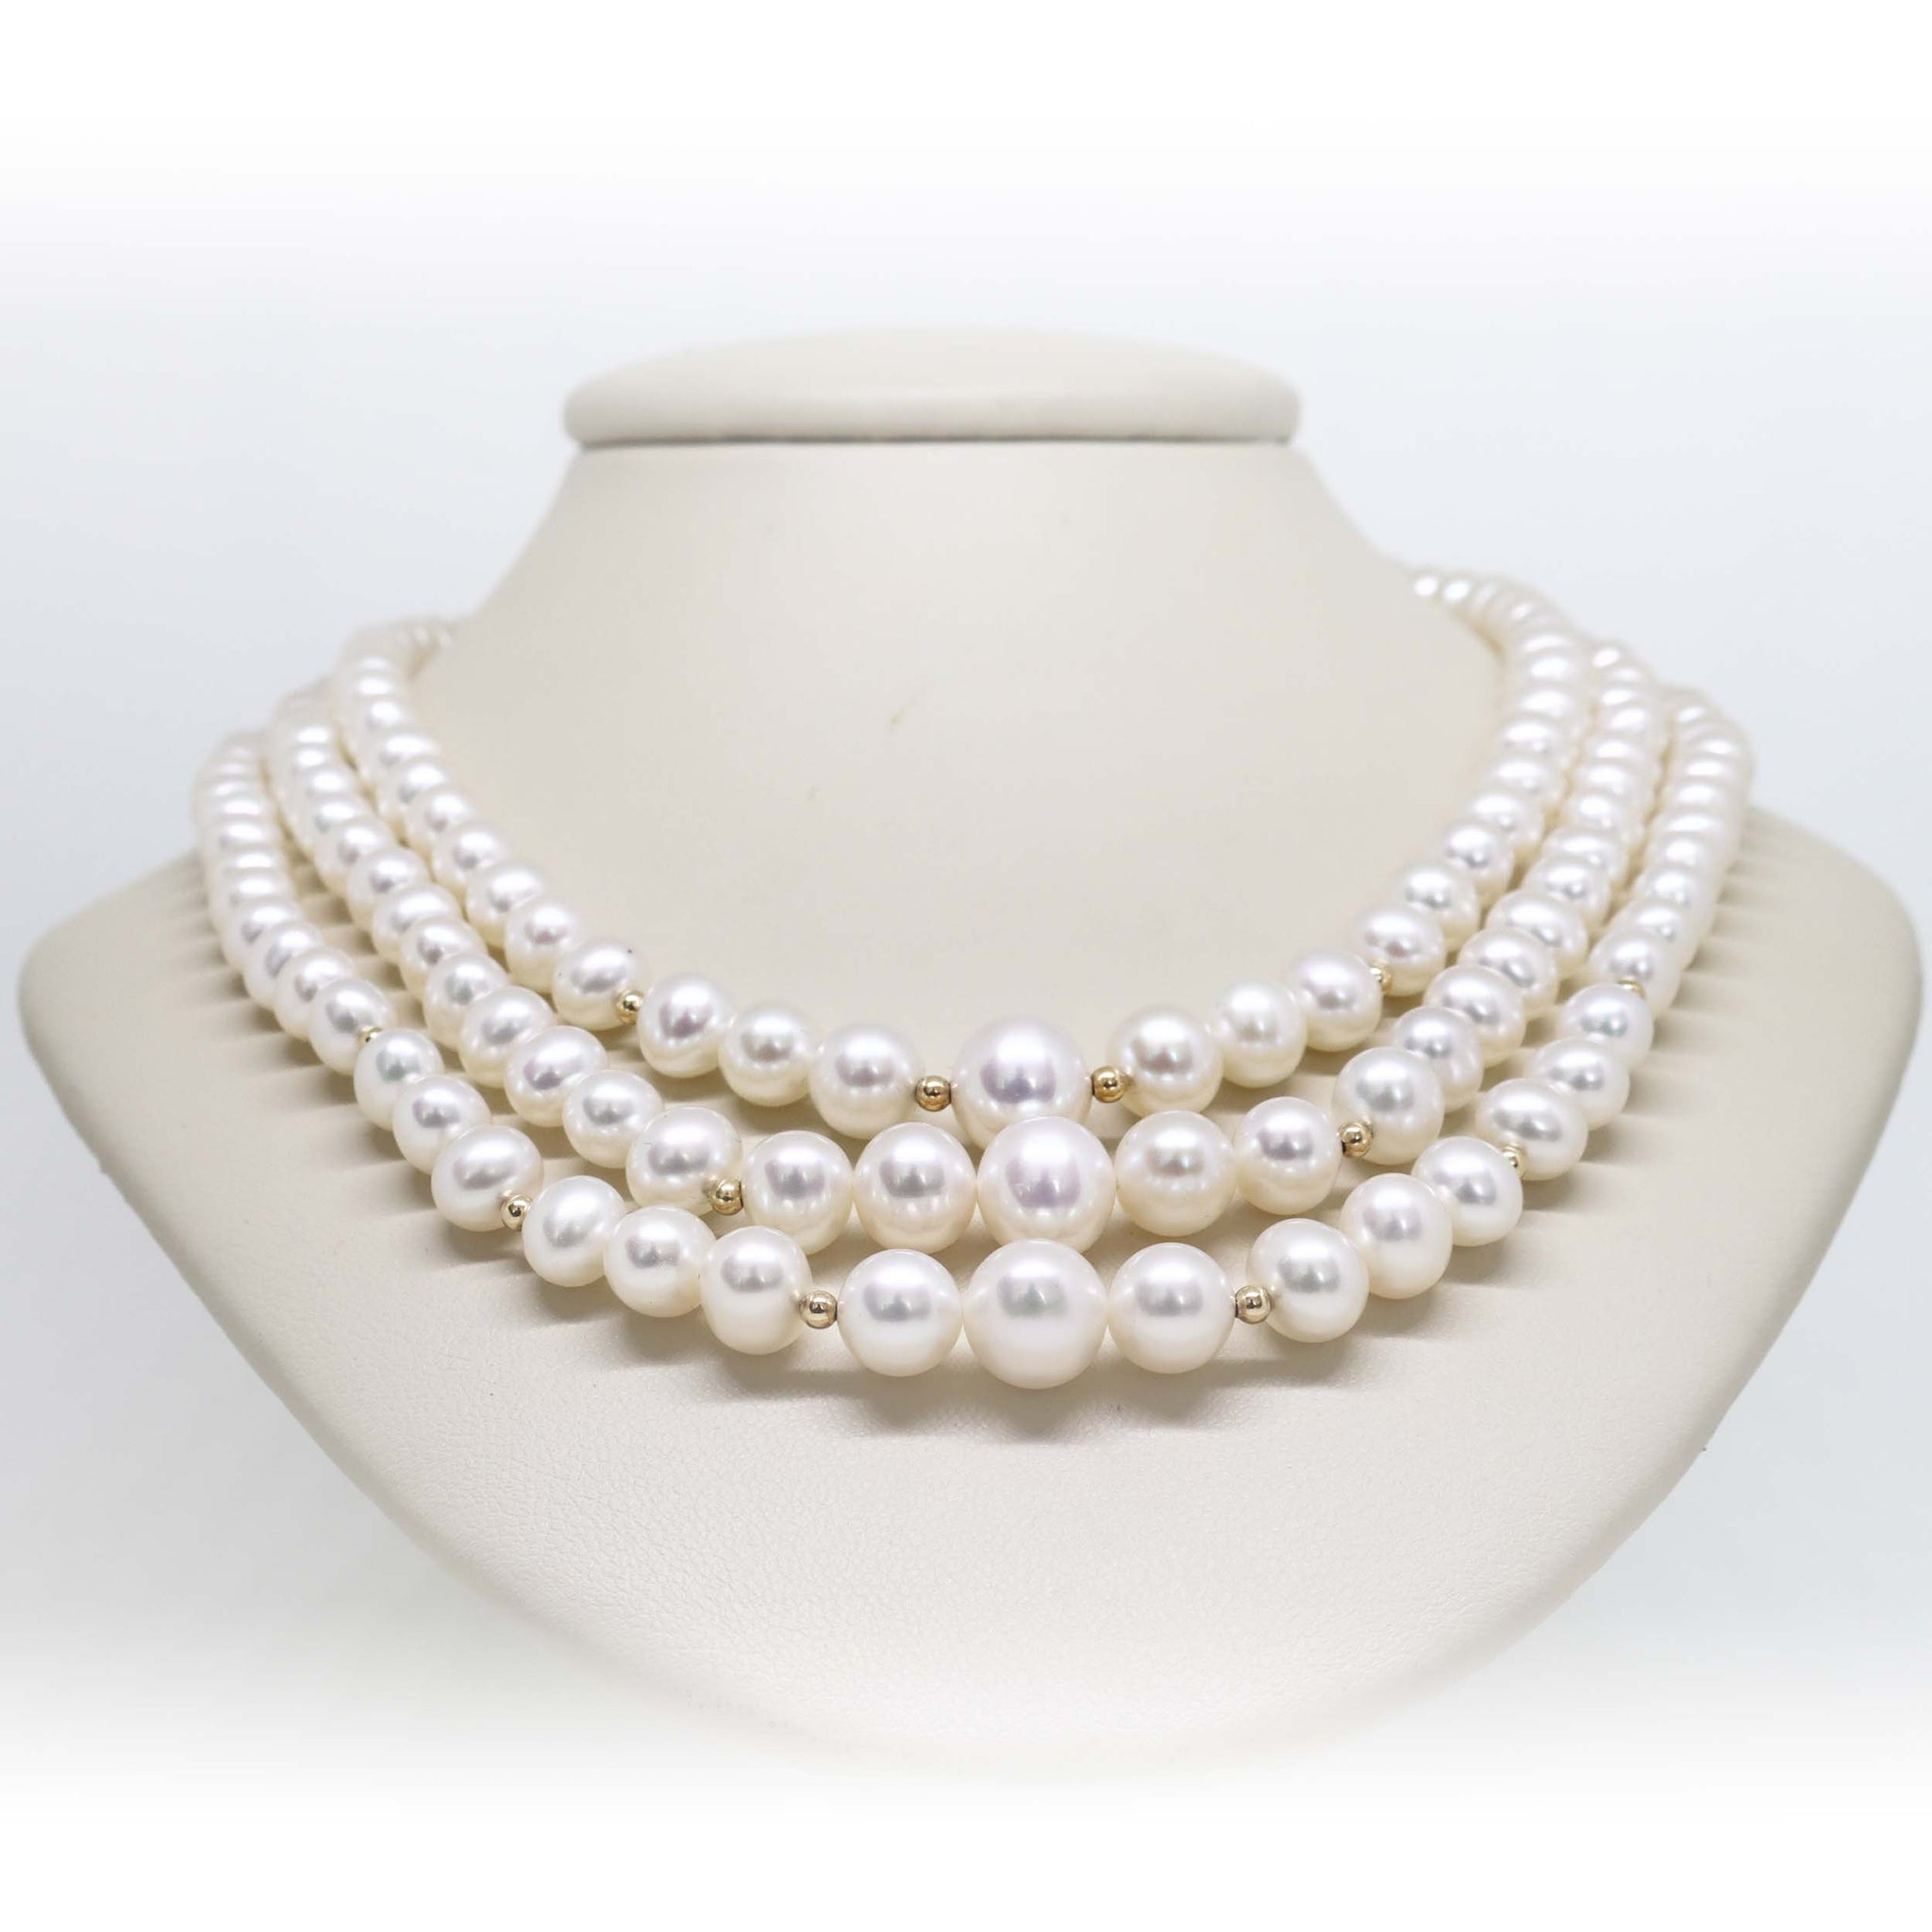 3 strand graduated pearl necklace